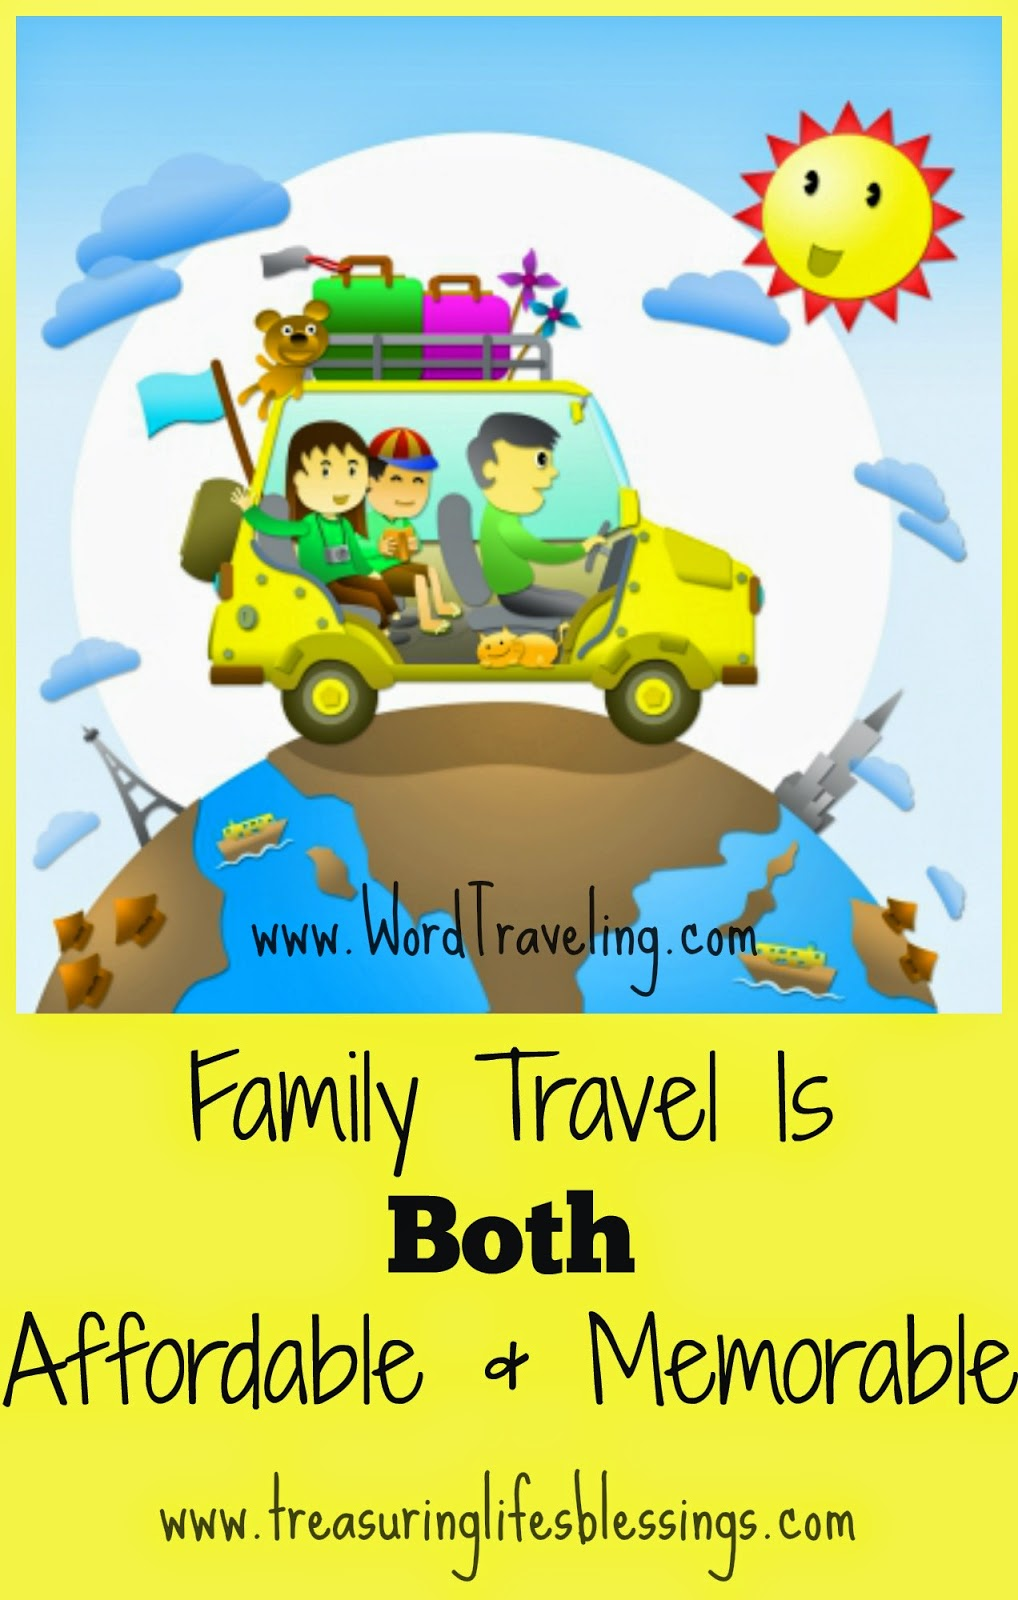 Family Travel is Affordable & Memorable via Wordtraveling.com #NTTW